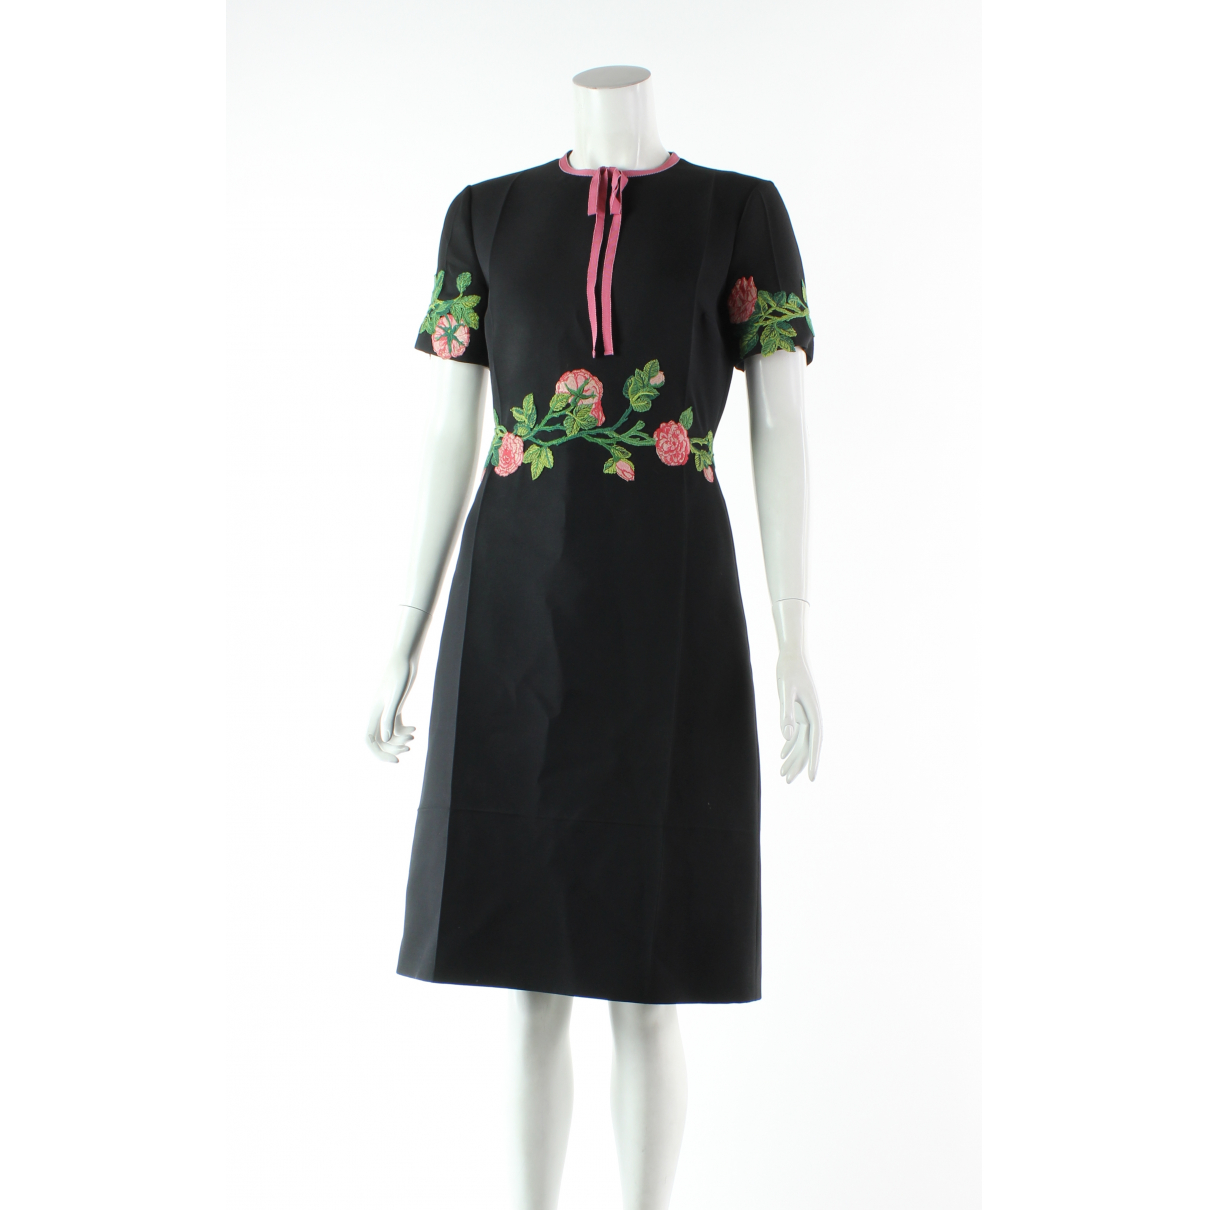 Gucci \N Black Leather dress for Women 4 US